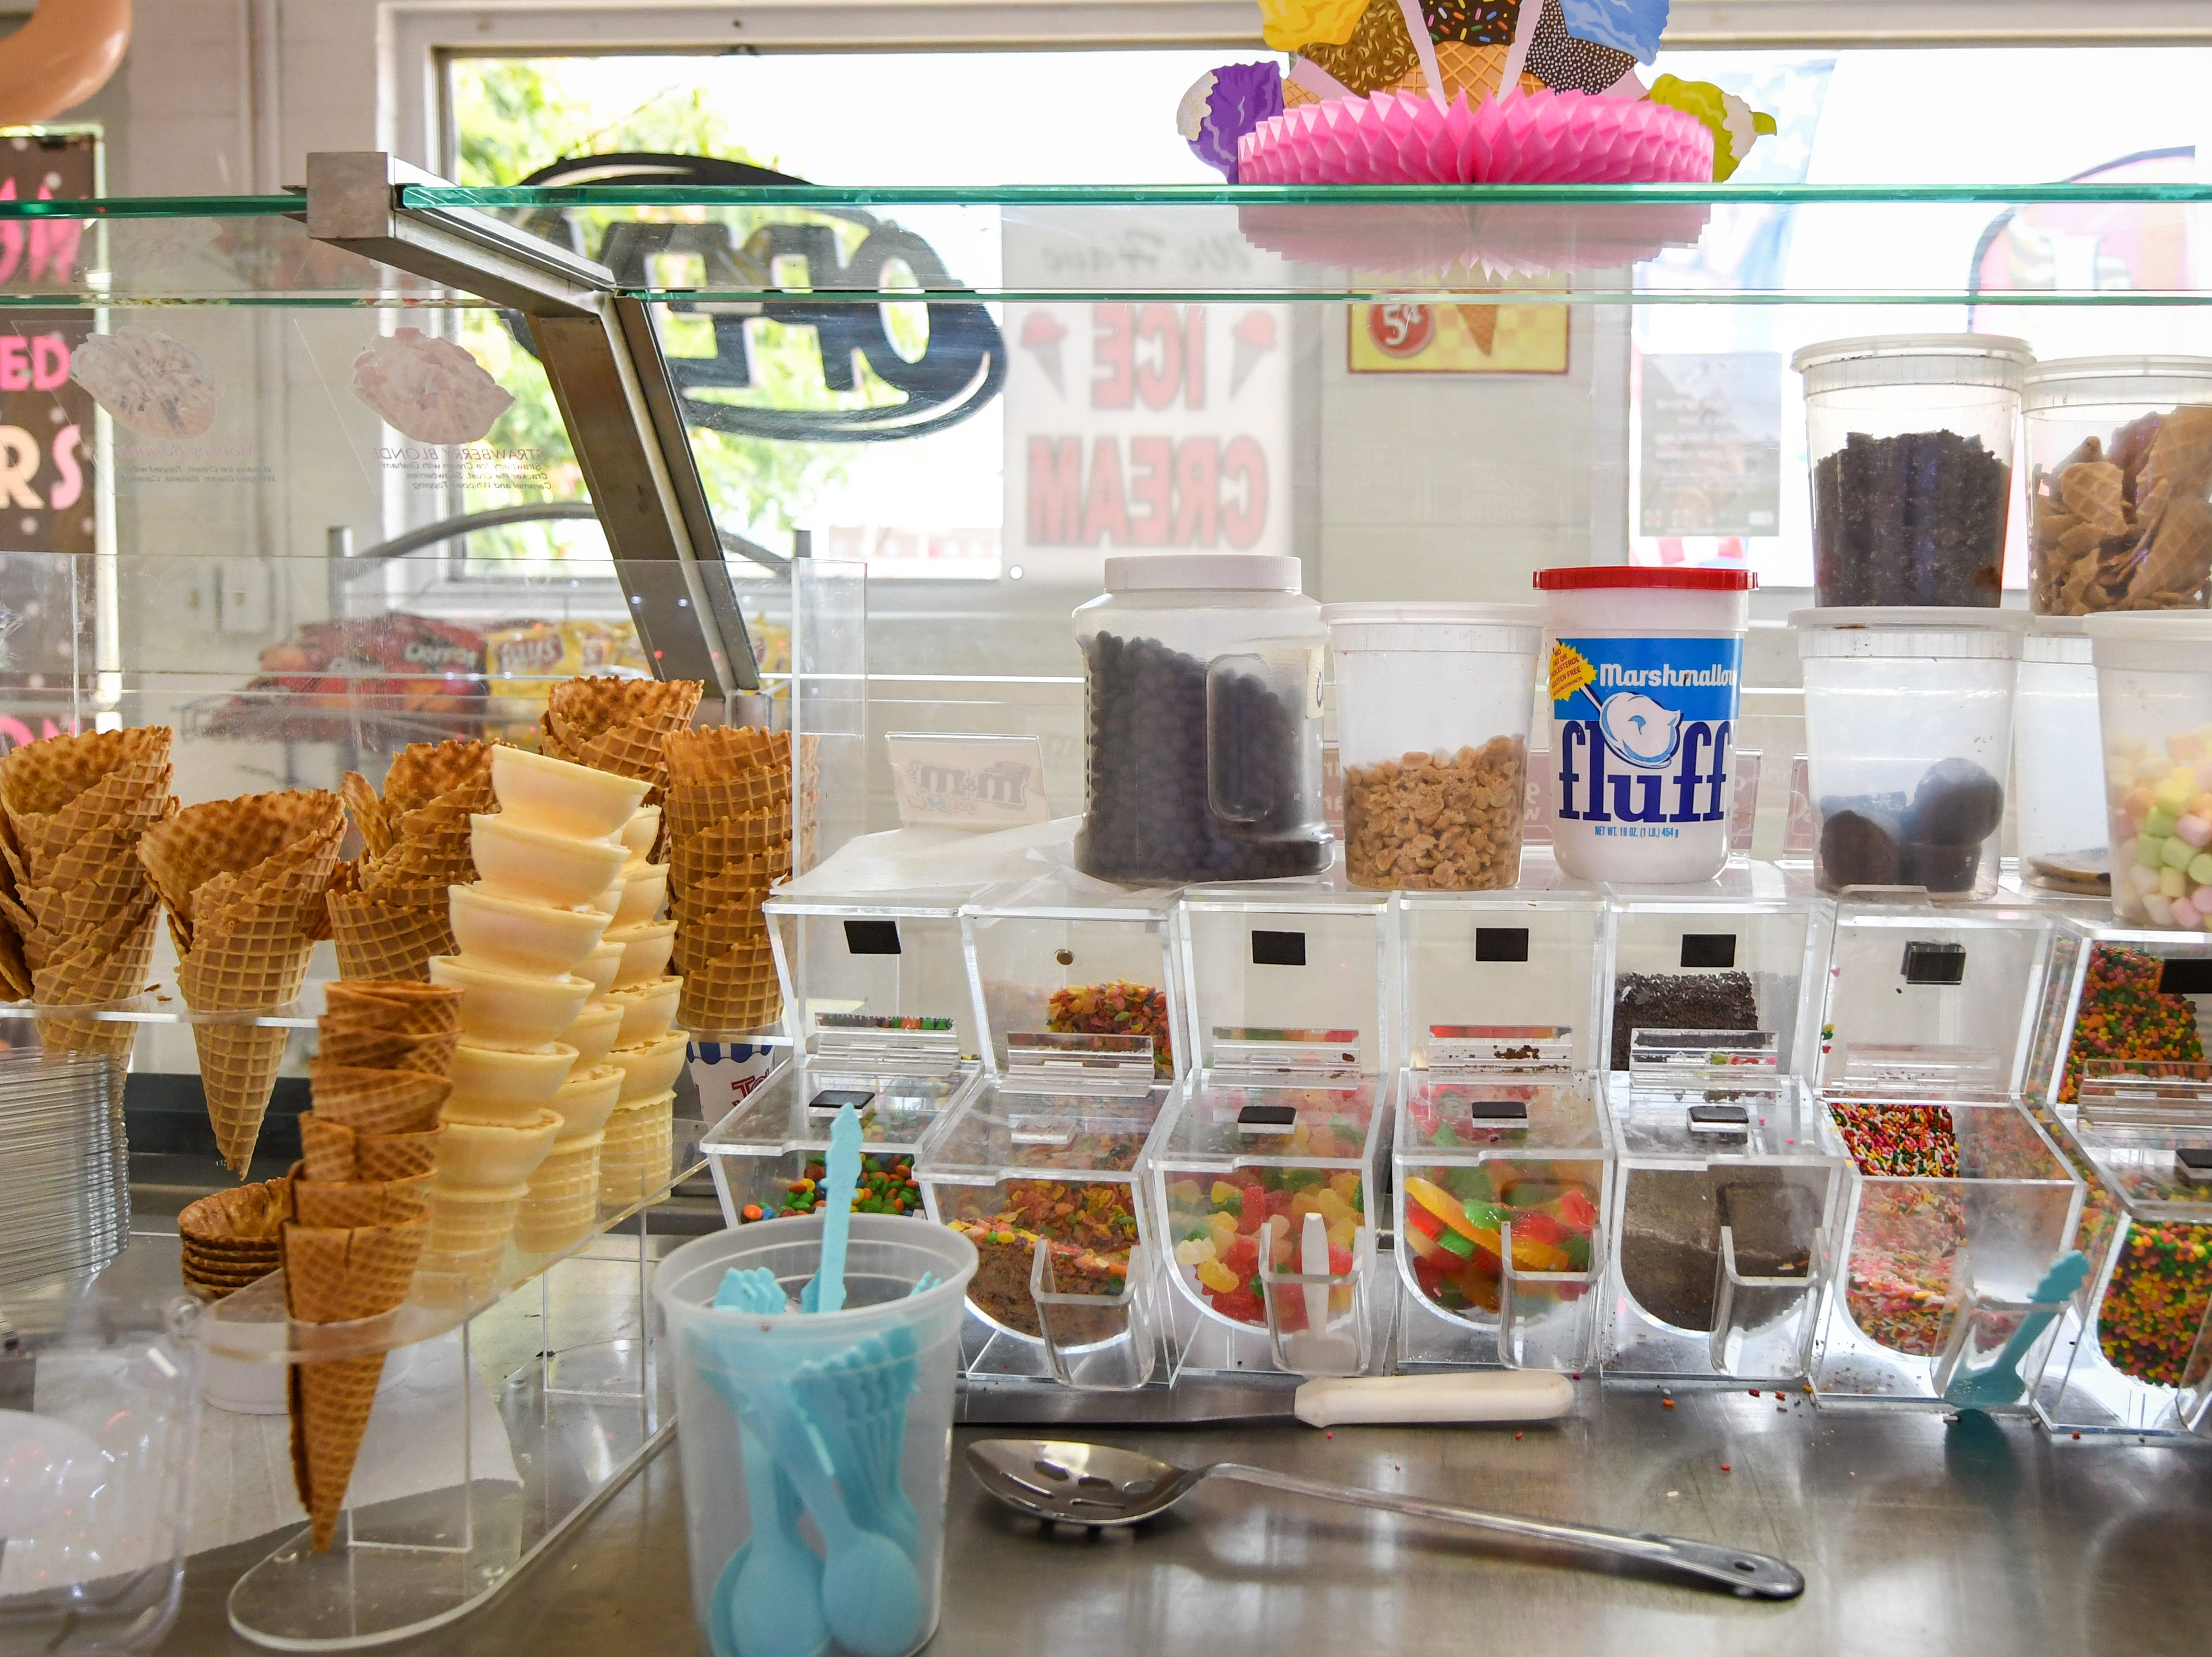 Customers can choose from a variety of toppings and cones at new bakery Johnnysweets in Crisfield.